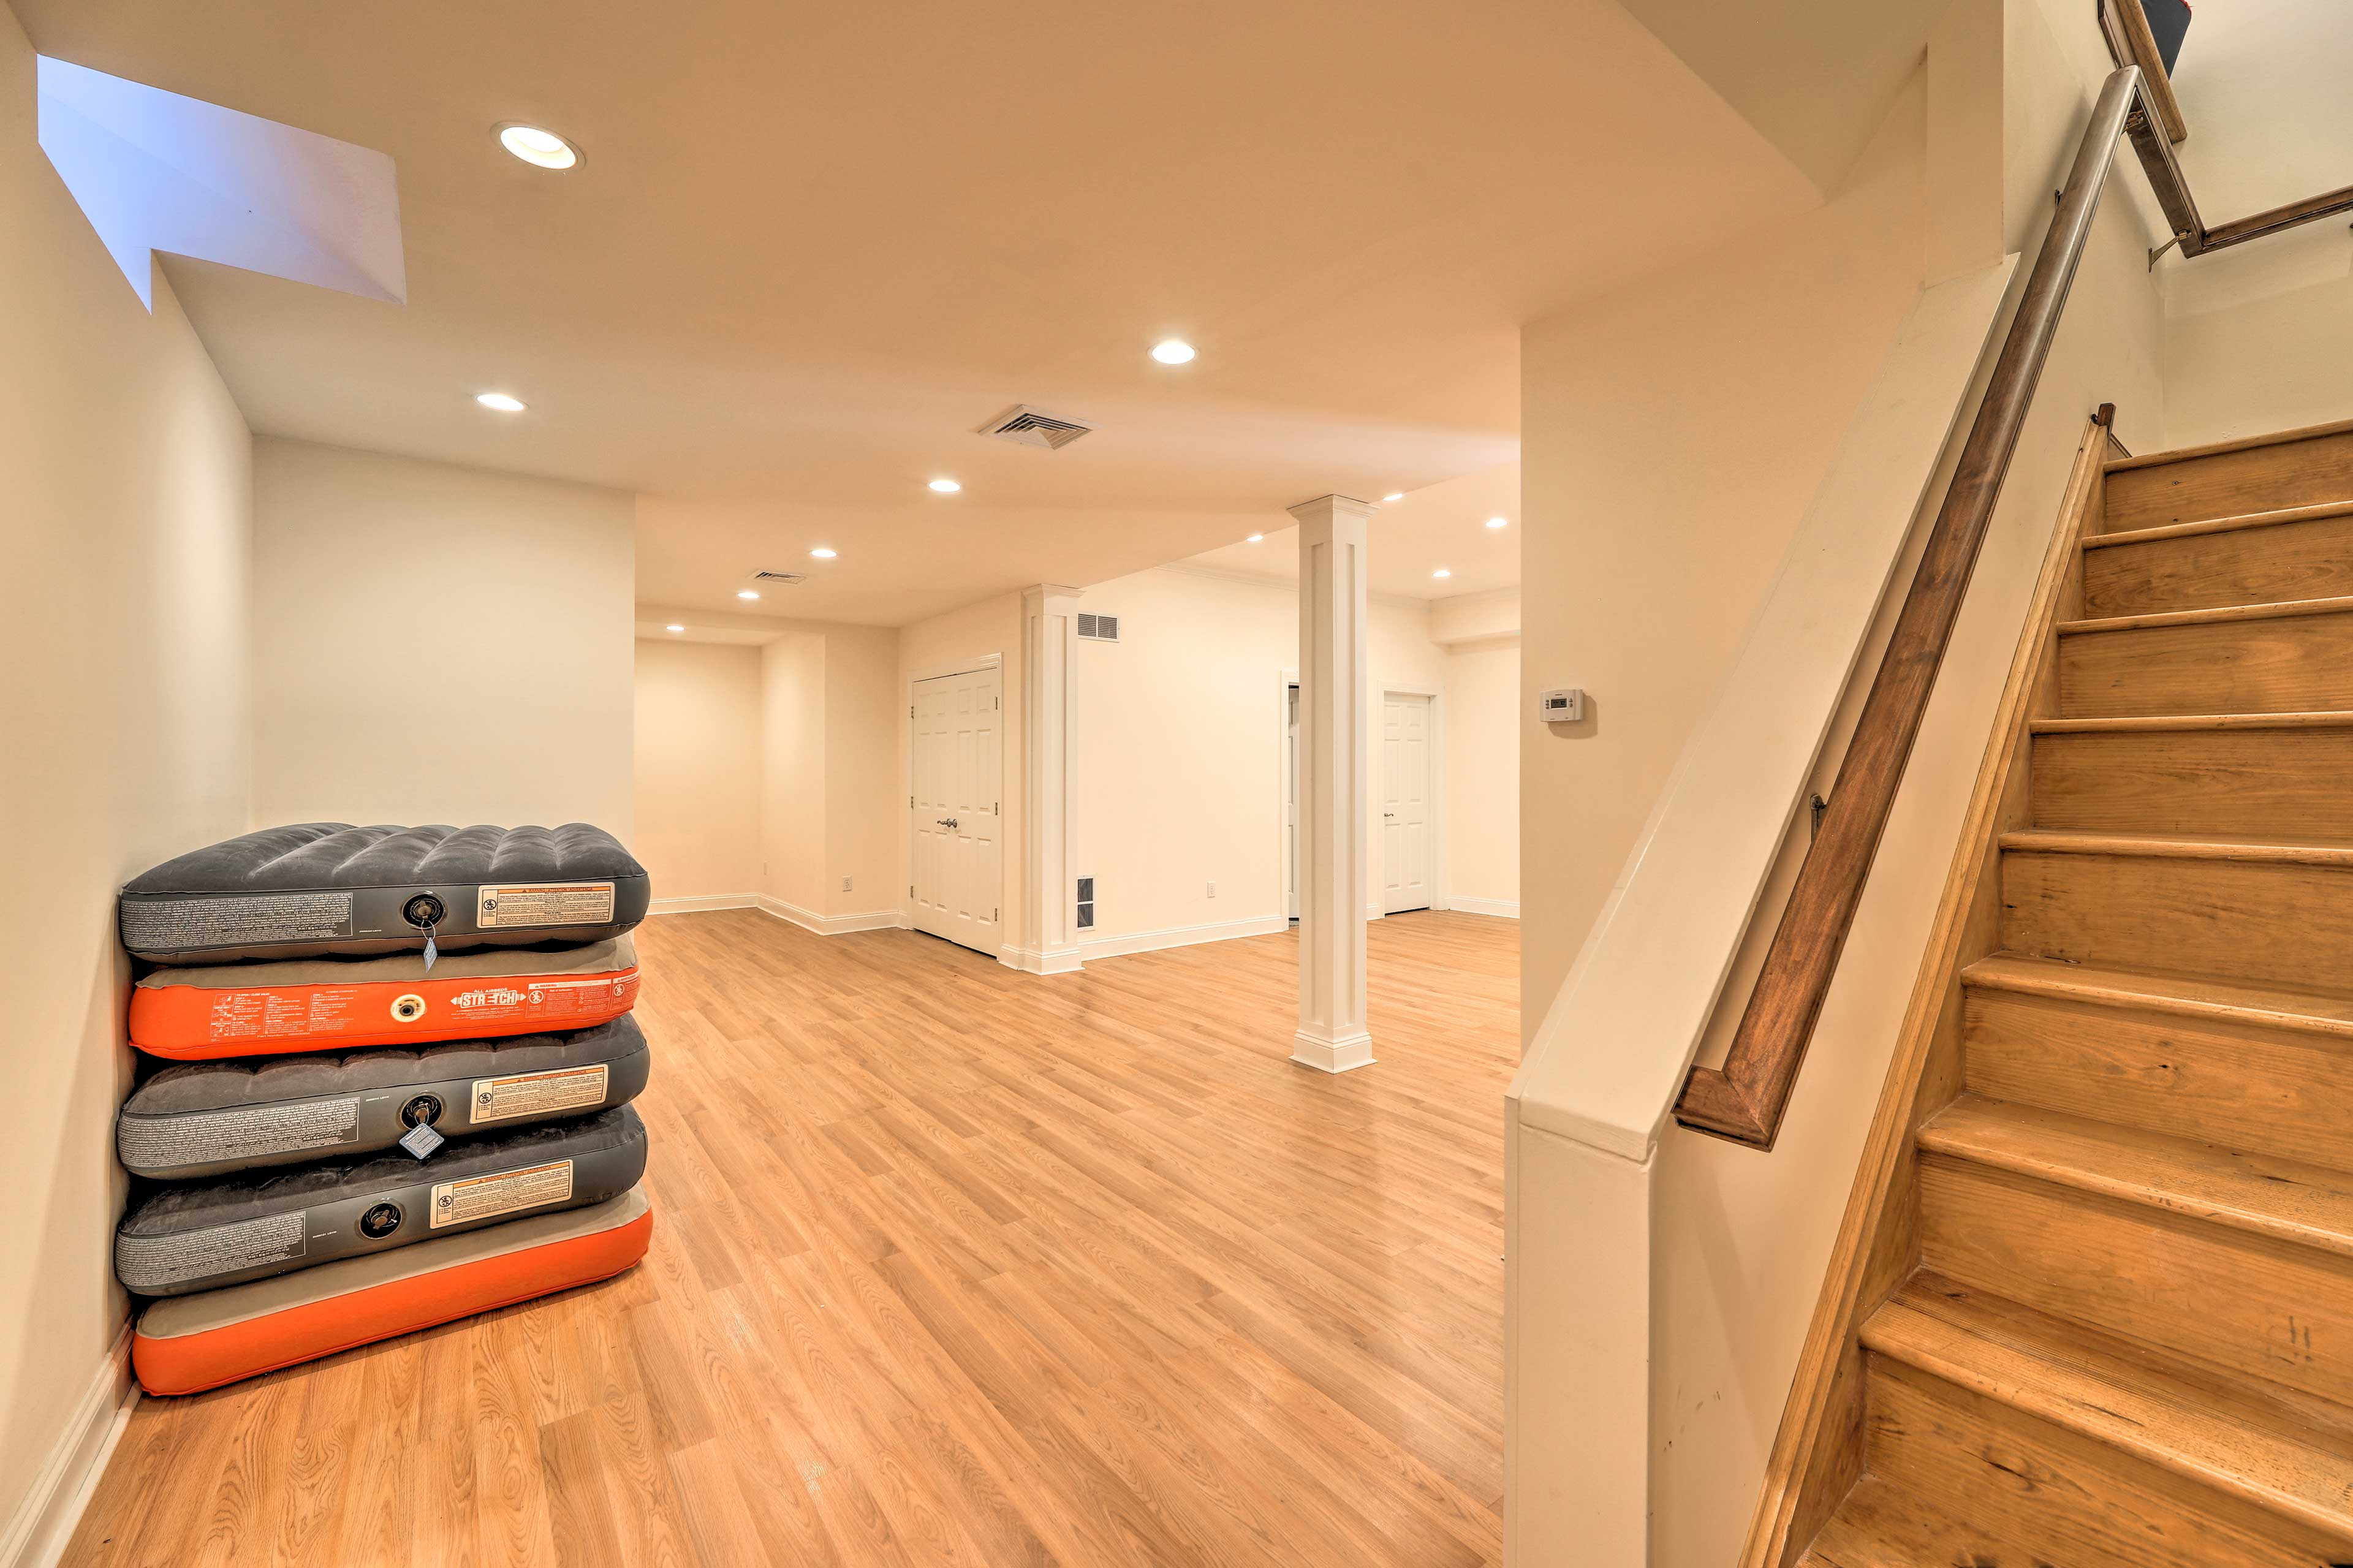 The spacious basement boasts a collection of air mattresses for your guests.